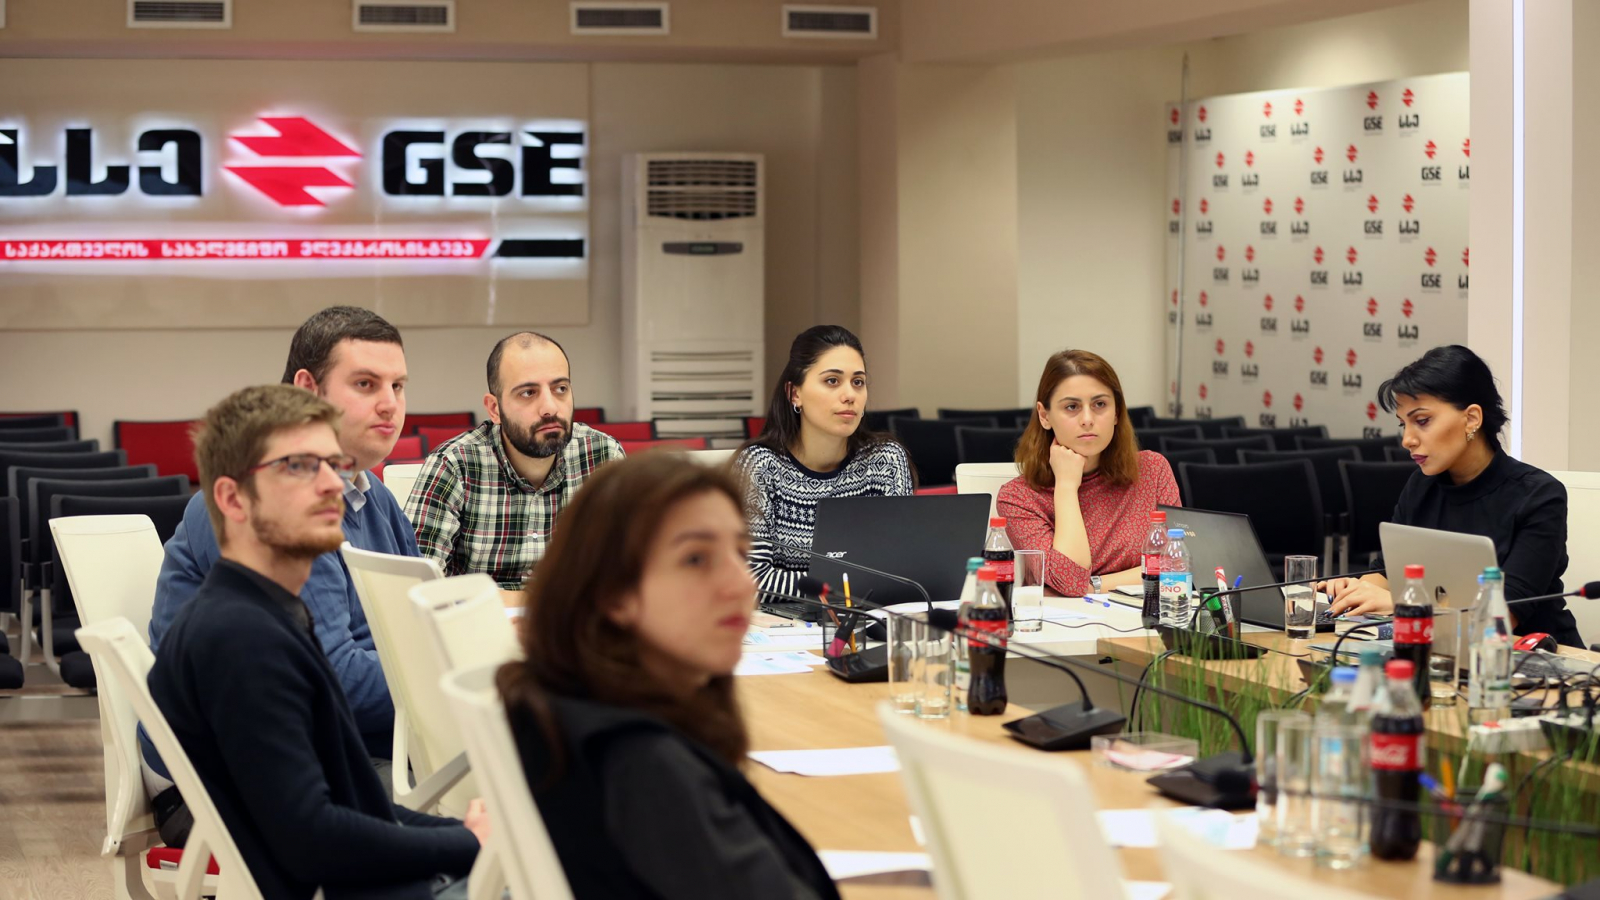 Meeting on Power System Planning in Compliance with ENTSO-E, December, 2019, Georgia